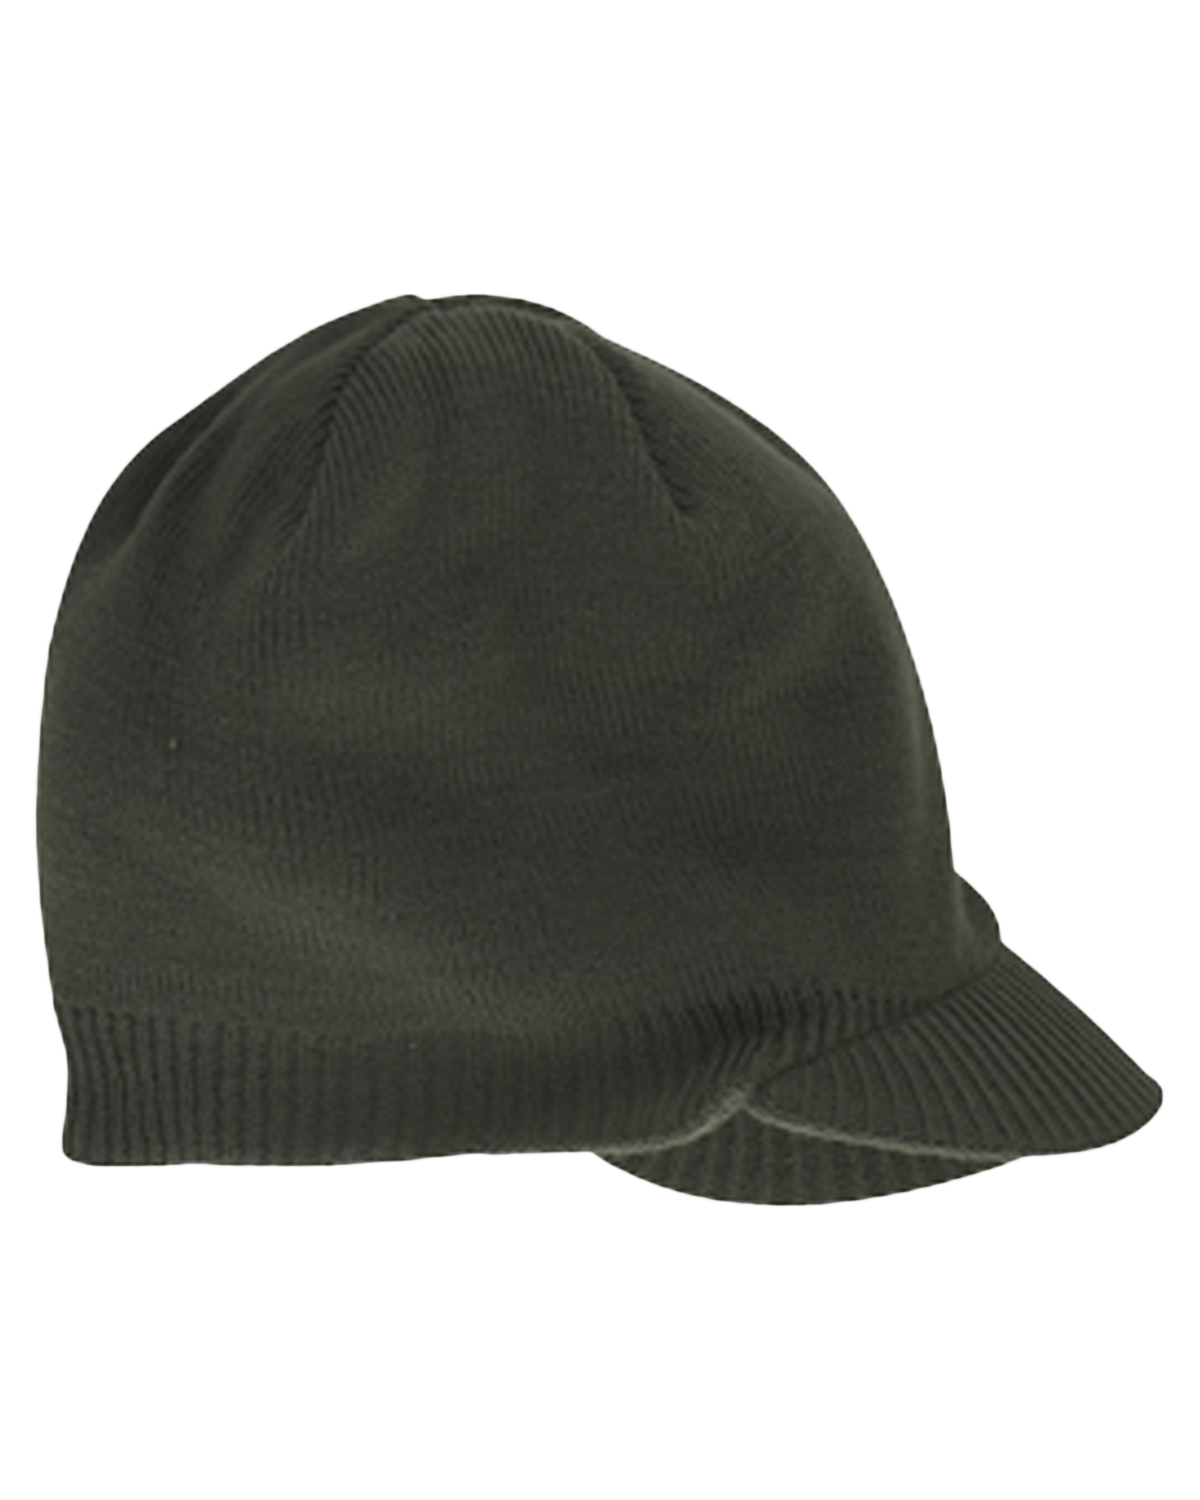 Big Accessories / BAGedge BX012 Unisex Knit Cap with Bill at GotApparel